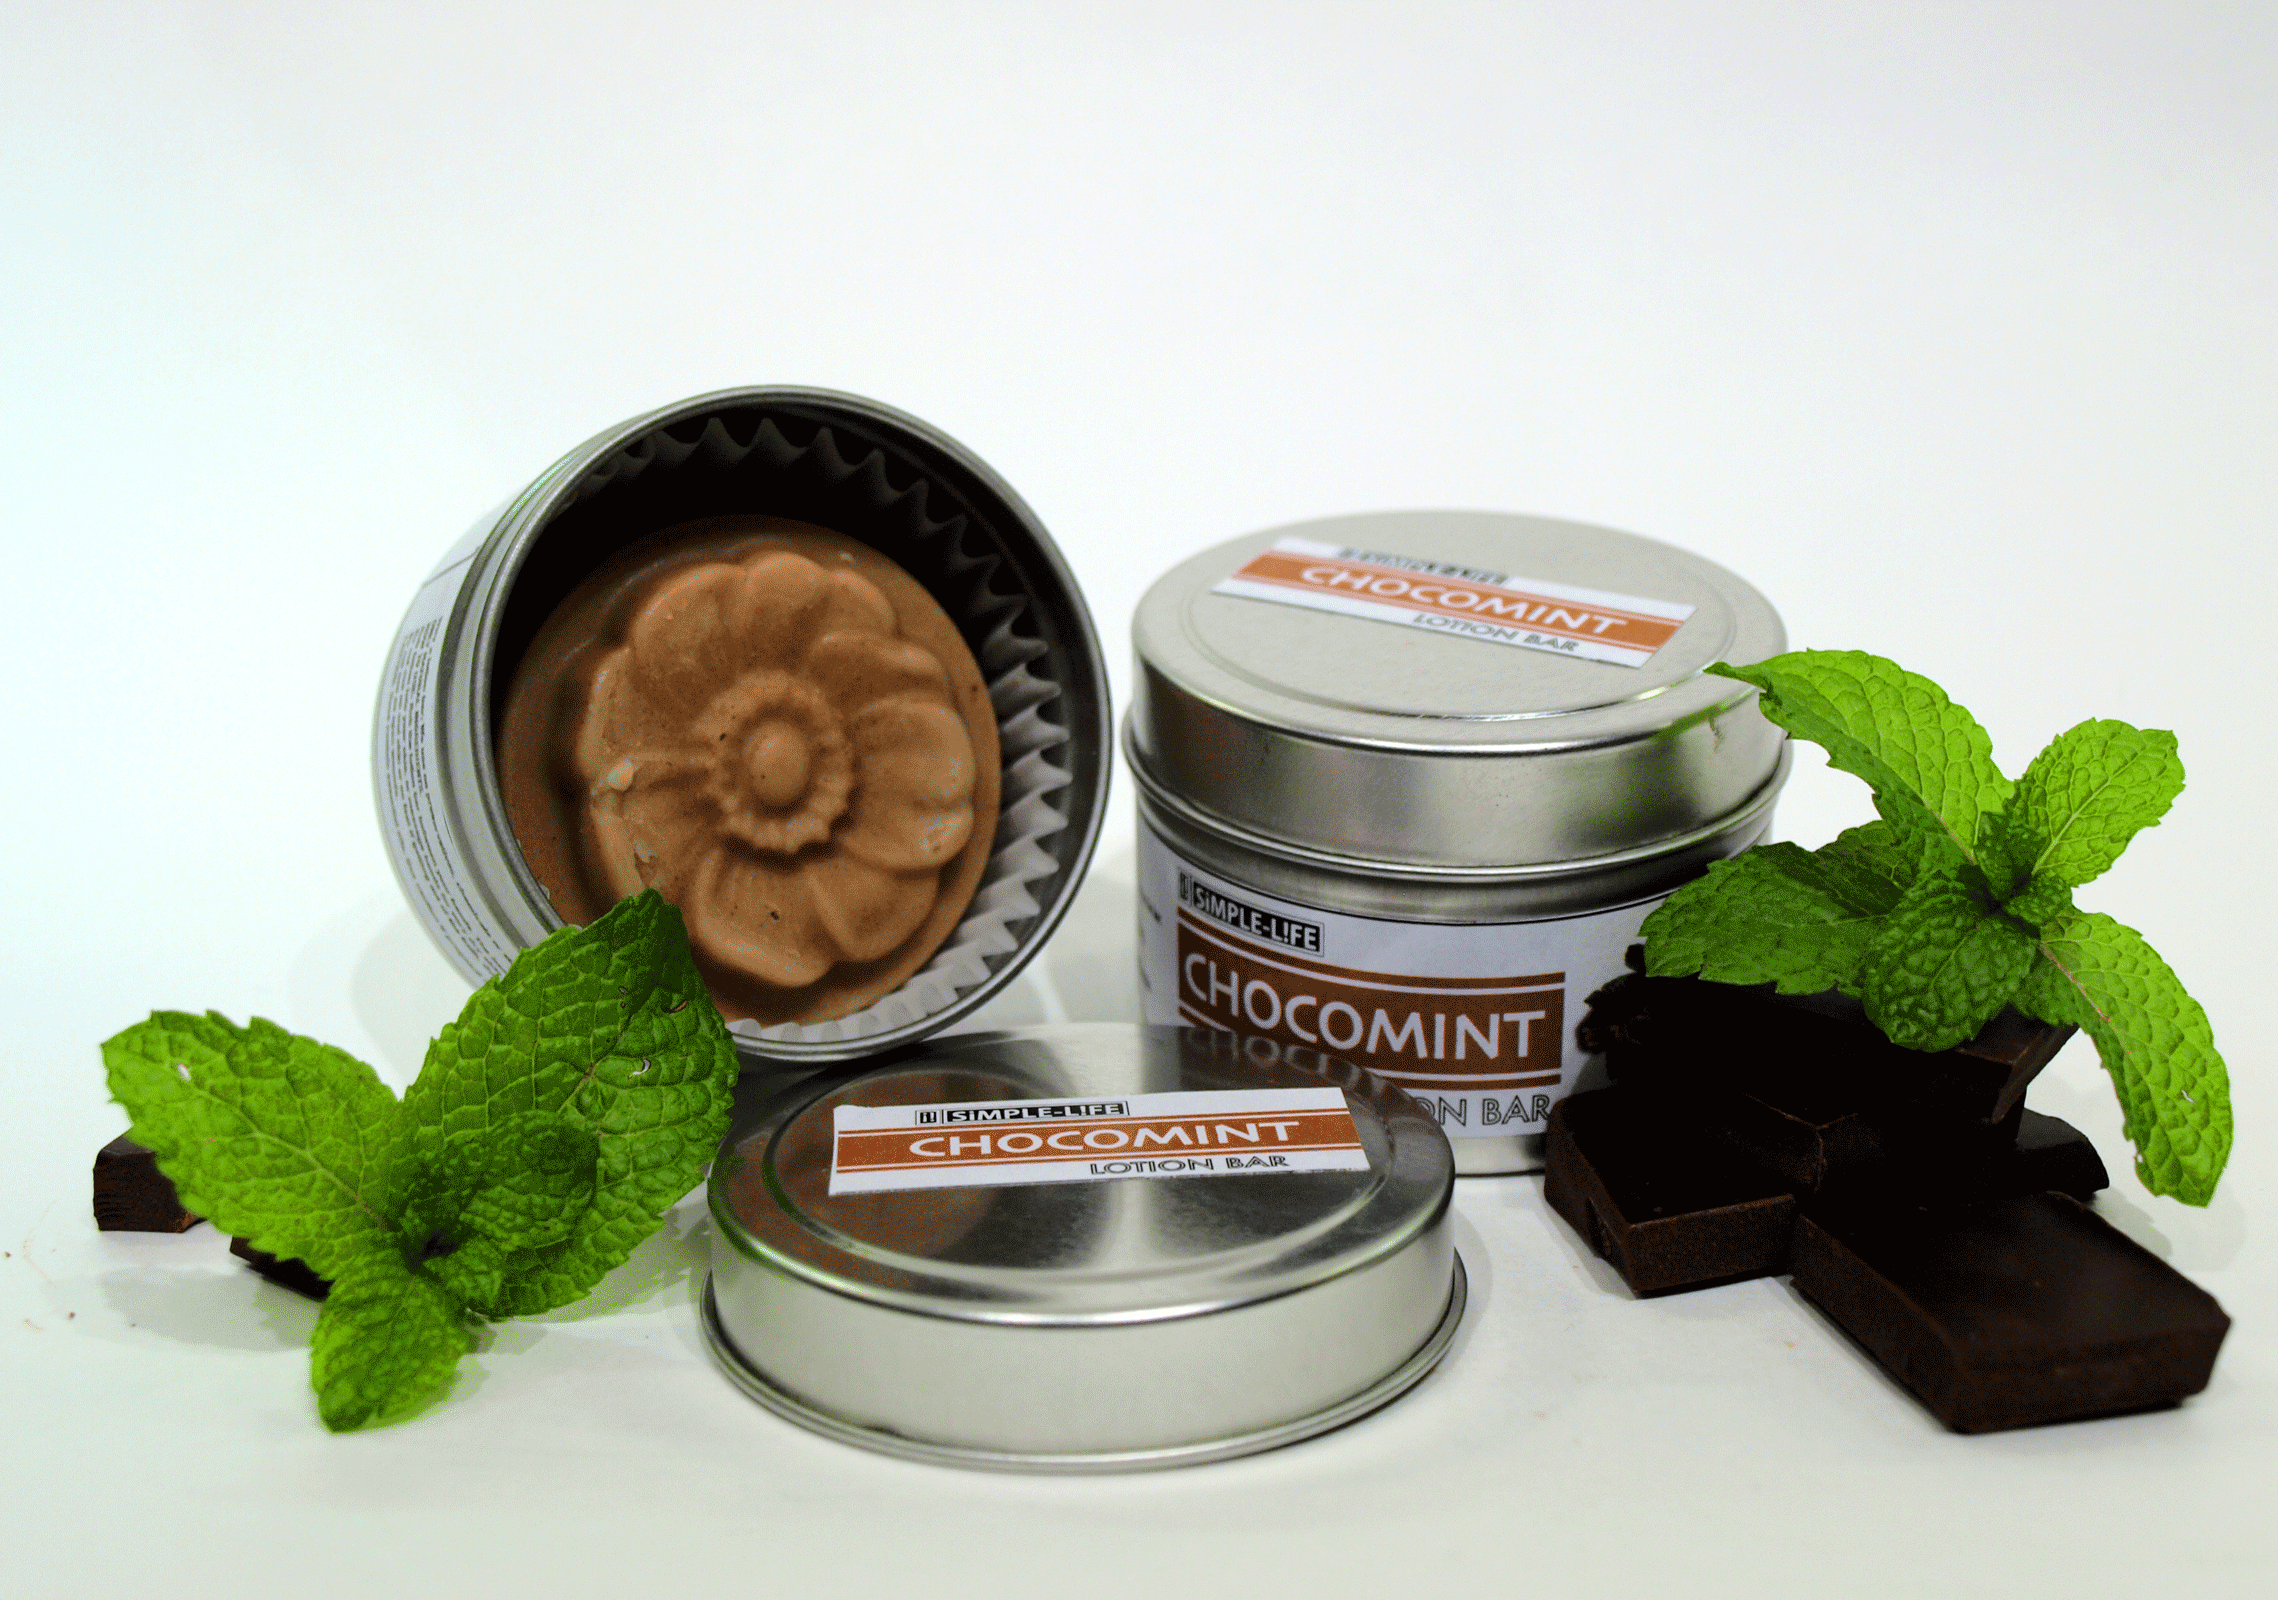 Chocomint Lotion Bars